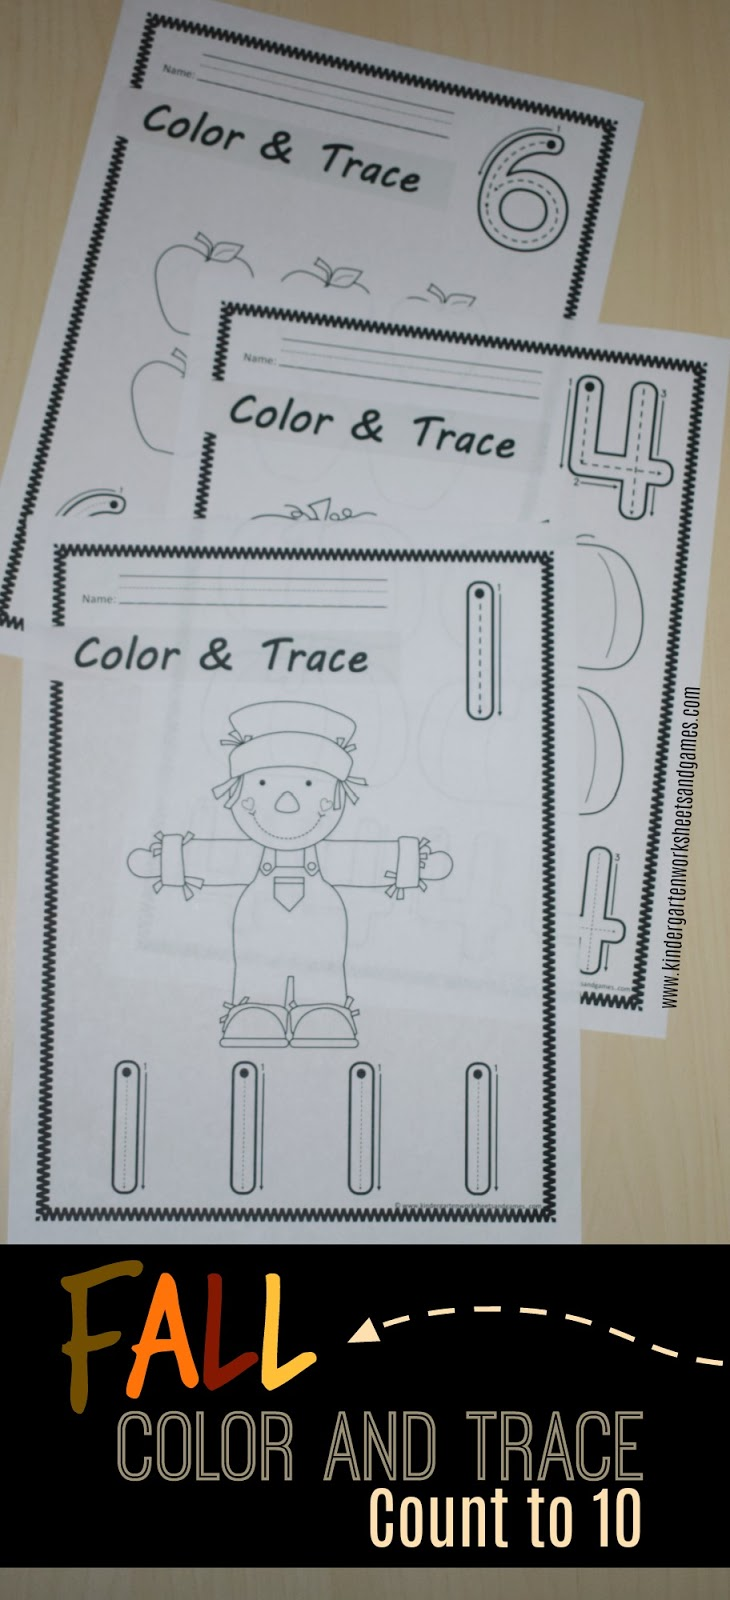 Kindergarten Worksheets And Games Free Fall Color And Trace Count